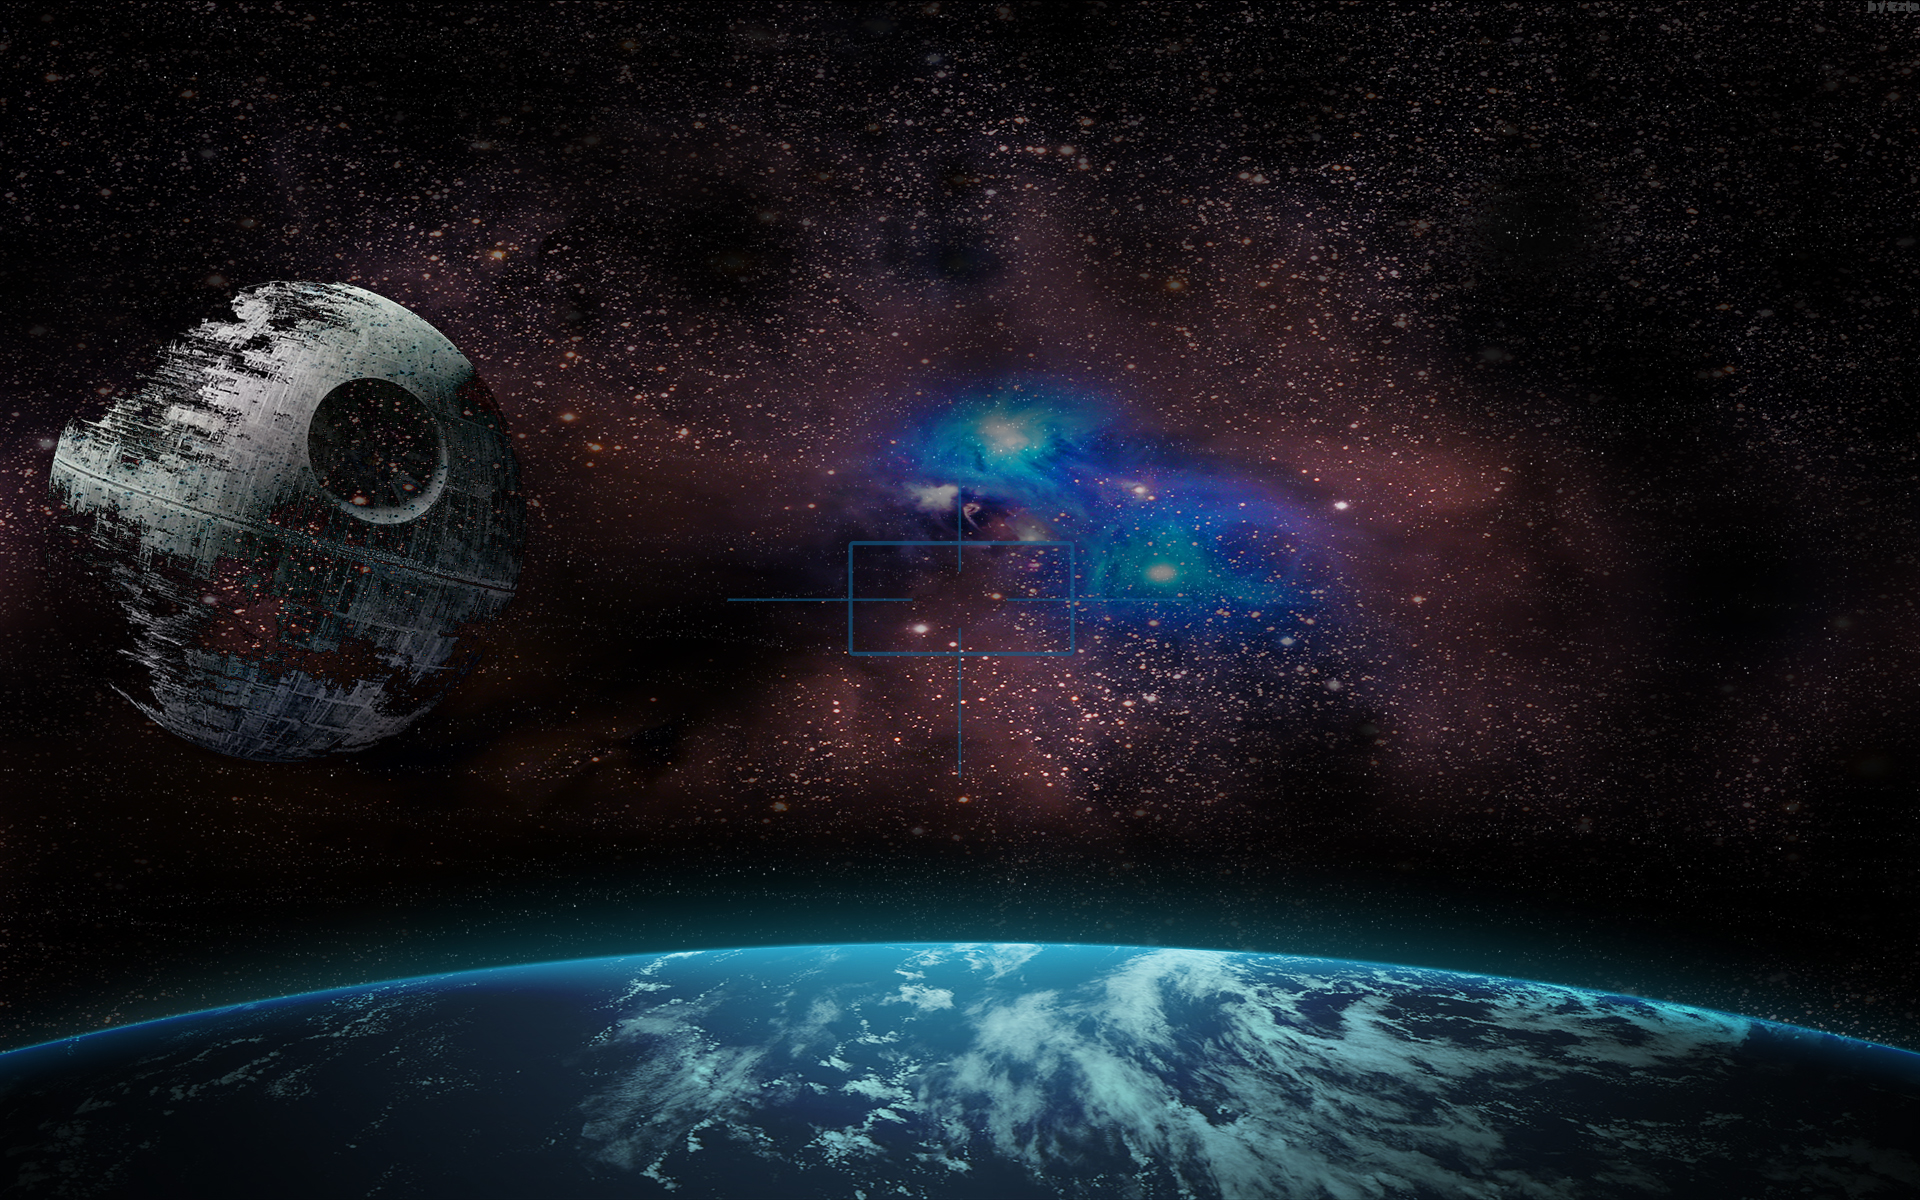 death star The death star is a fictional moon-sized space station and superweapon appearing in the star wars movies and expanded universe it is capable of destroying a planet with a single destructive beam.